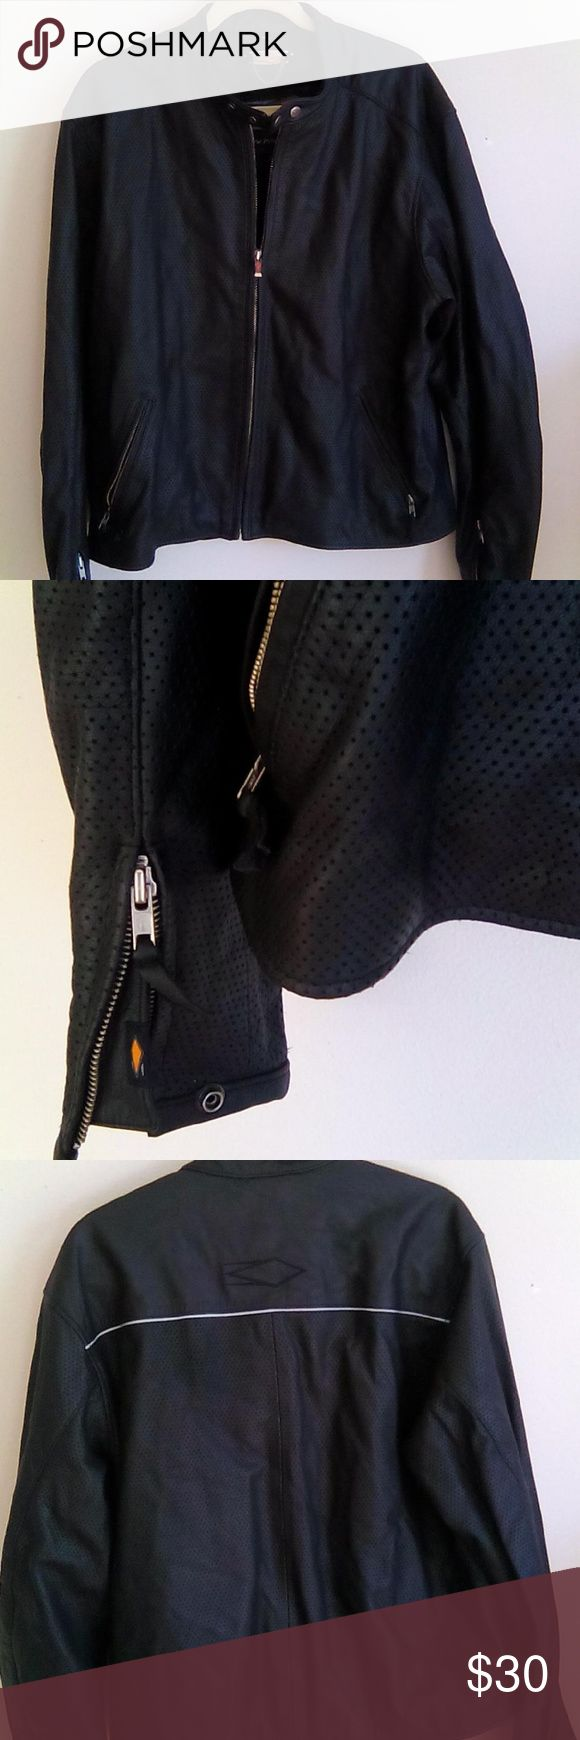 """Power Trip Motorcycle Jacket  Leather Black L Like new condition. Power trip black leather motorcycle jacket. perforated leather style. 3M Scotchlite reflective material also. zipper front close and sleeves. tag size large. chest-48"""" shoulder to shoulder-20"""" length- 24"""" Power Trip Jackets & Coats Performance Jackets"""